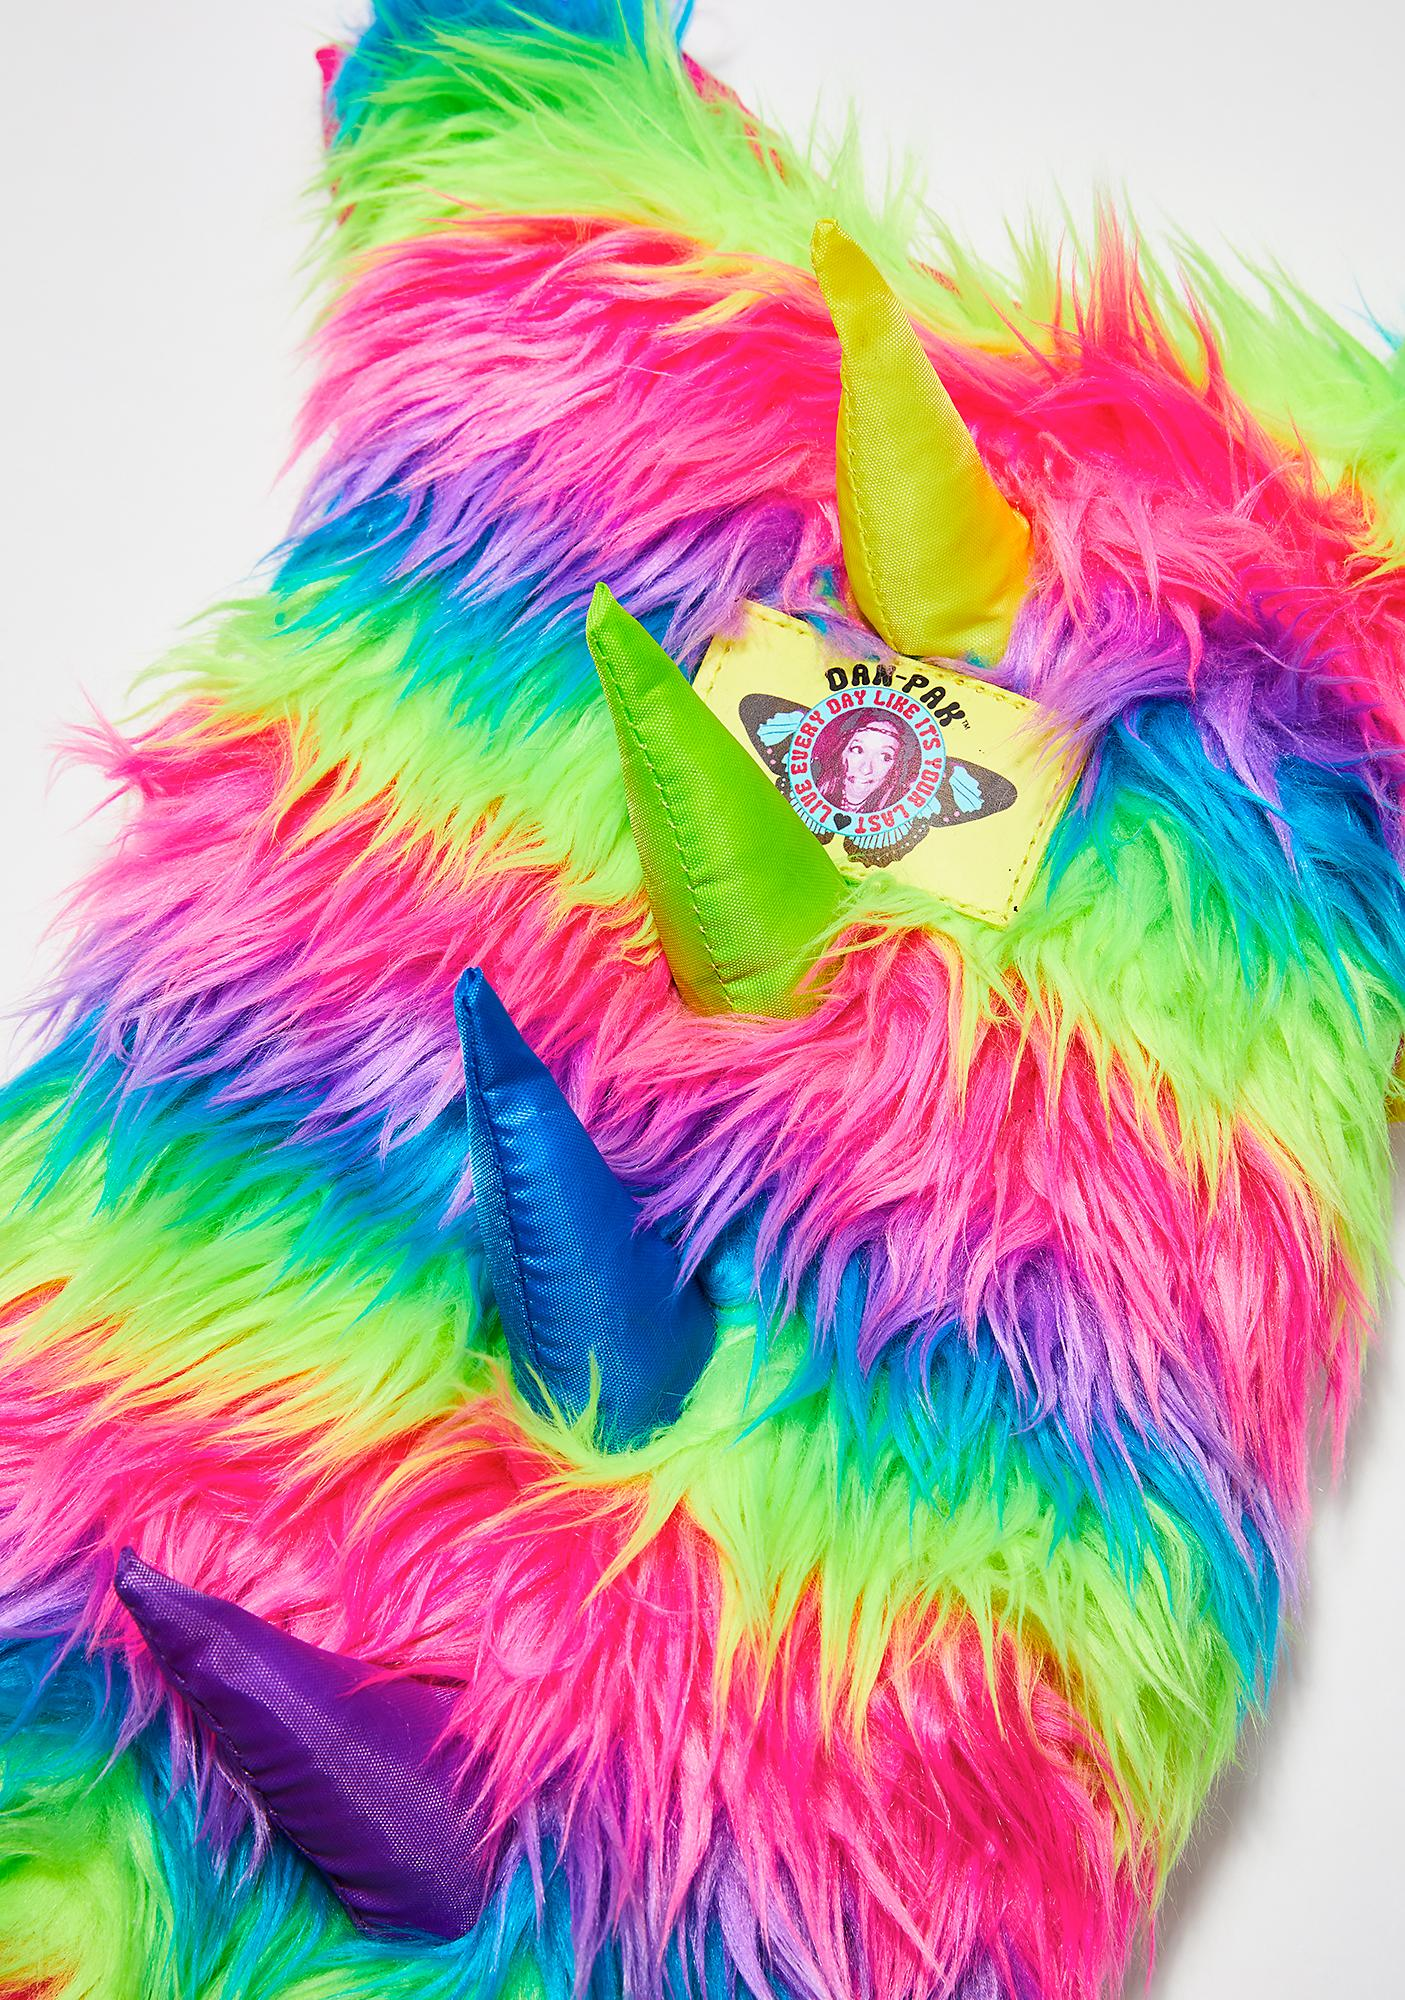 Dan-Pak Neon Furry Monster Hydration Backpack